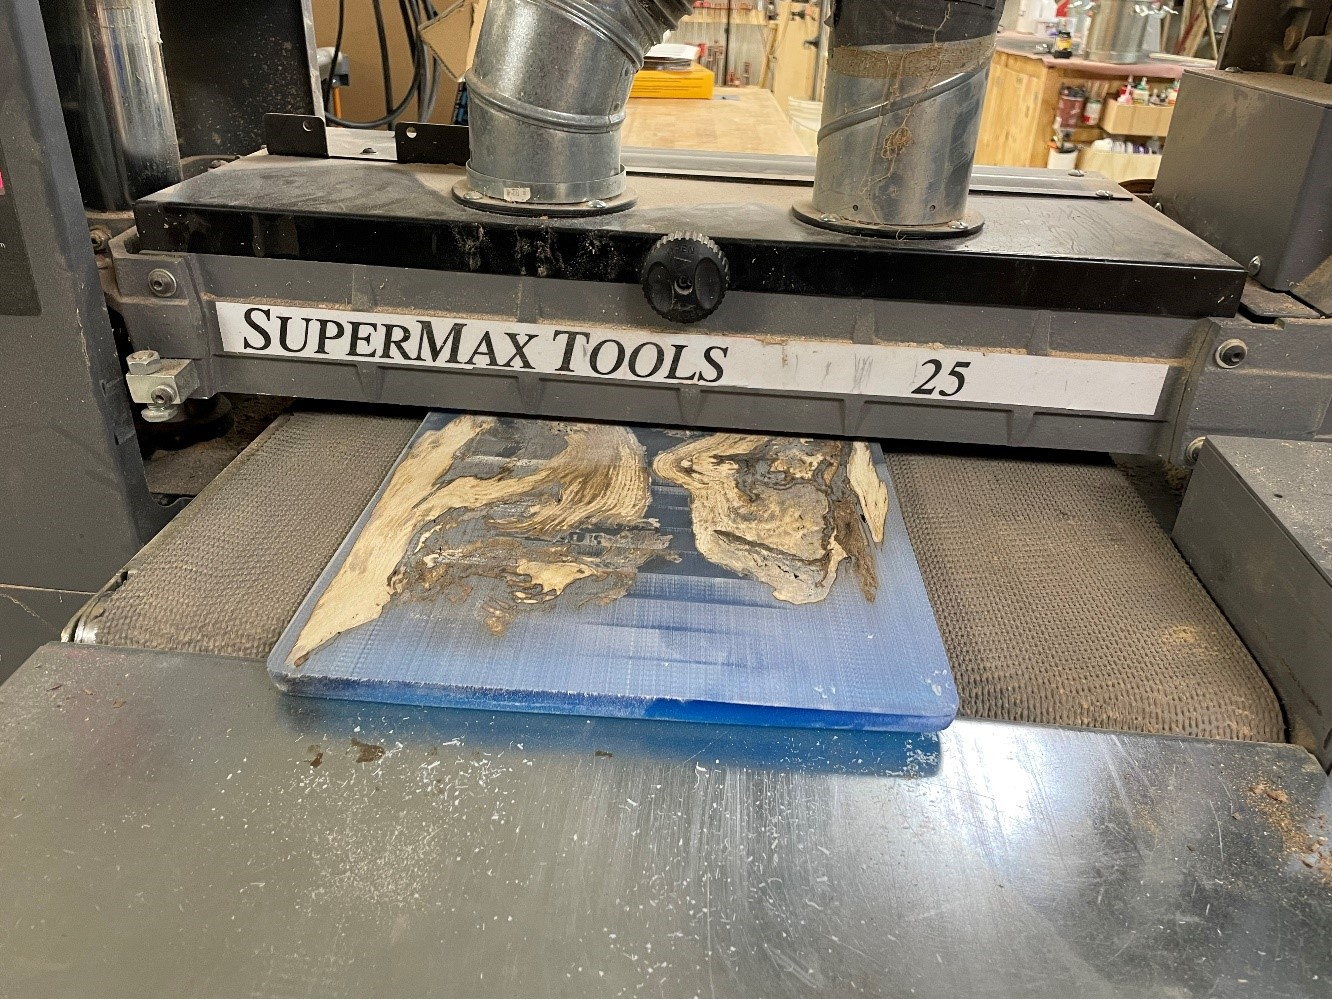 use a drum sander to evenly sand the surface